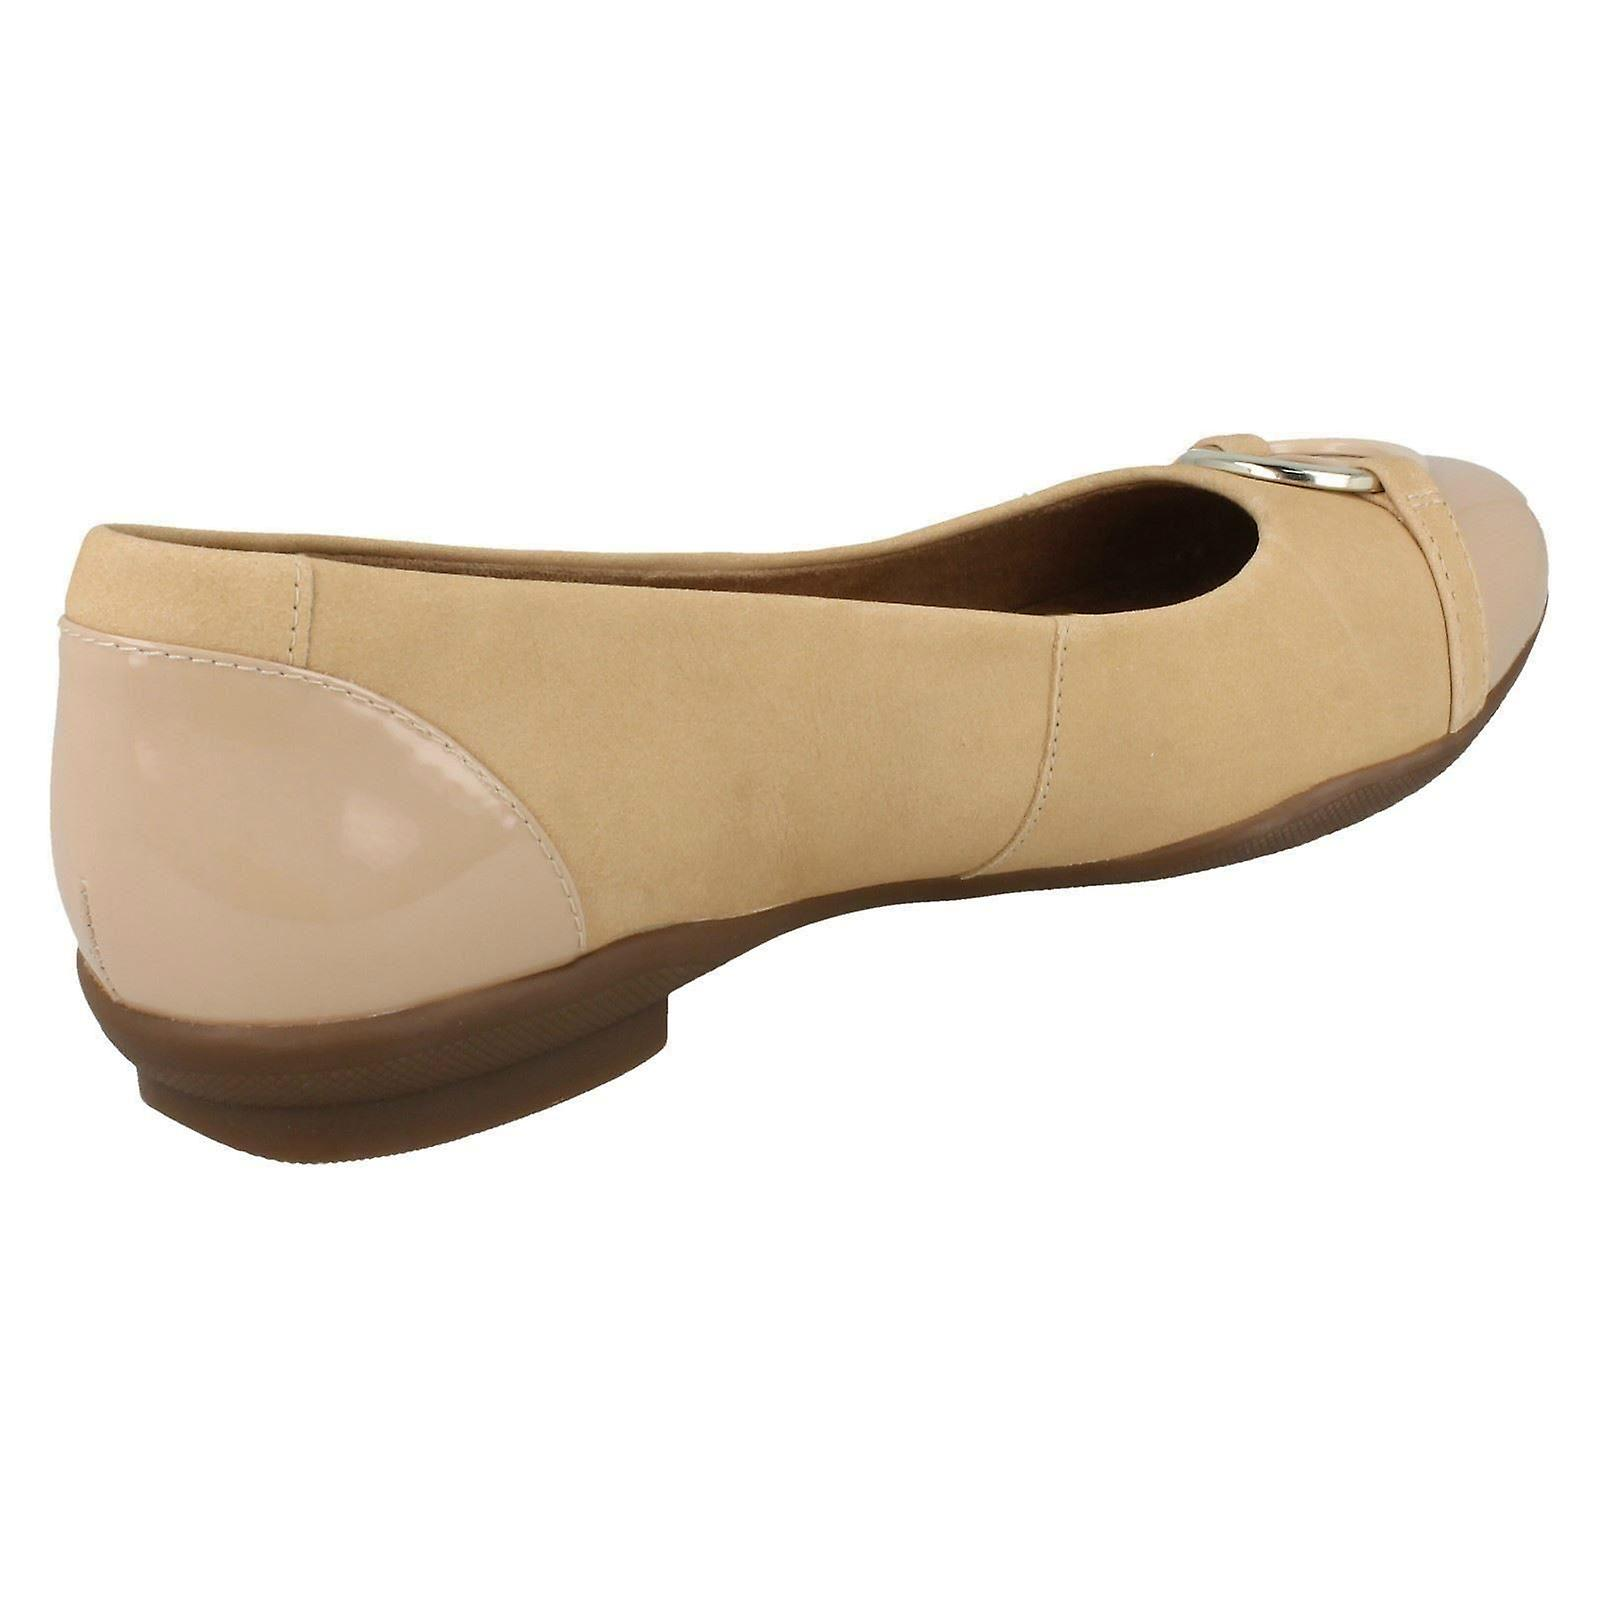 Size Ring Detail 8 6E Size Vine Clarks EU 39 Neenah US Size Ladies Ballerina 5 5W Combi Flat With Nude UK gw46q